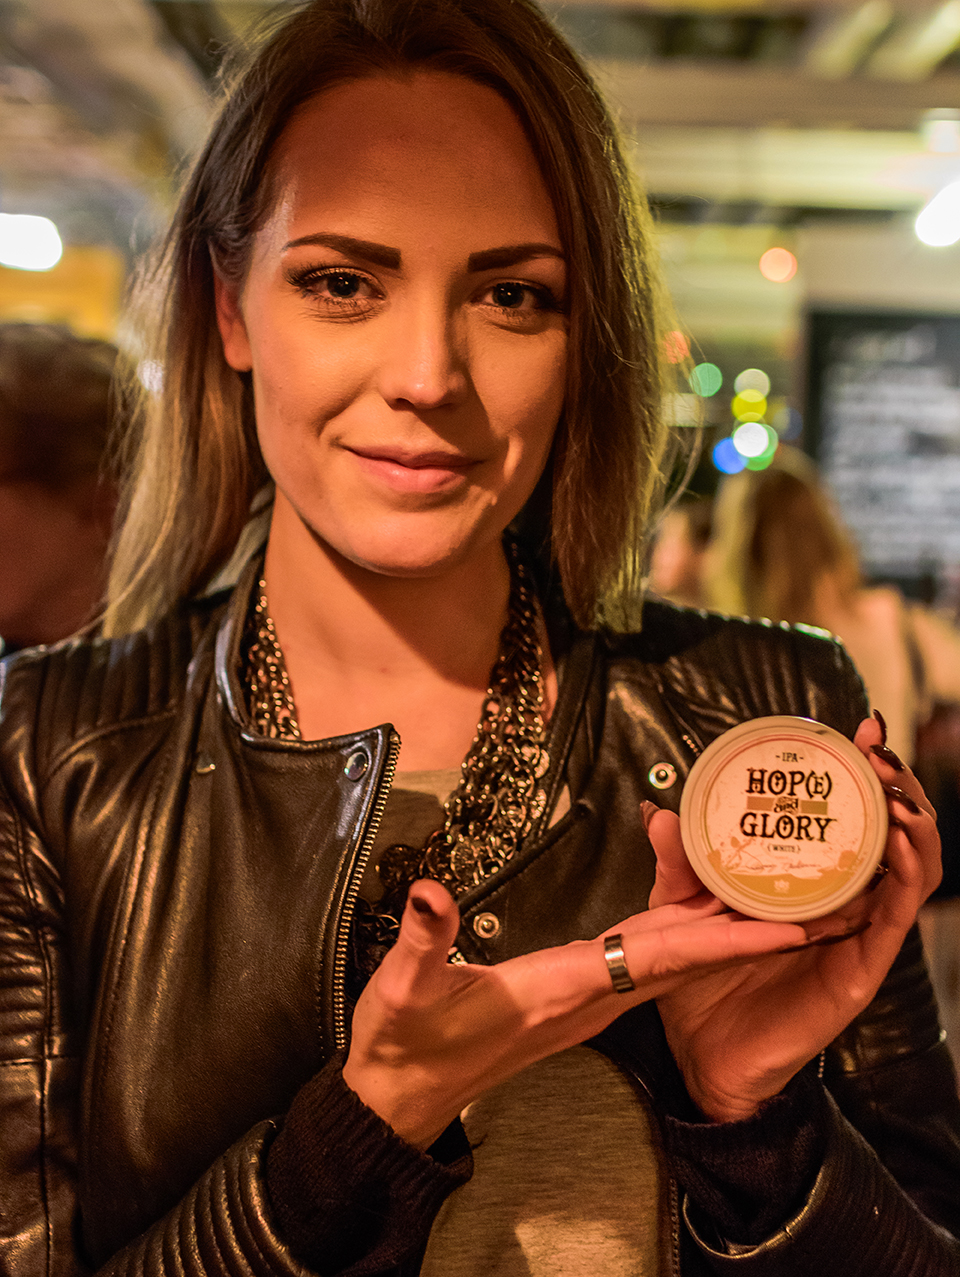 If you think this festival only attracts men, you're wrong my friend - women love snus too!